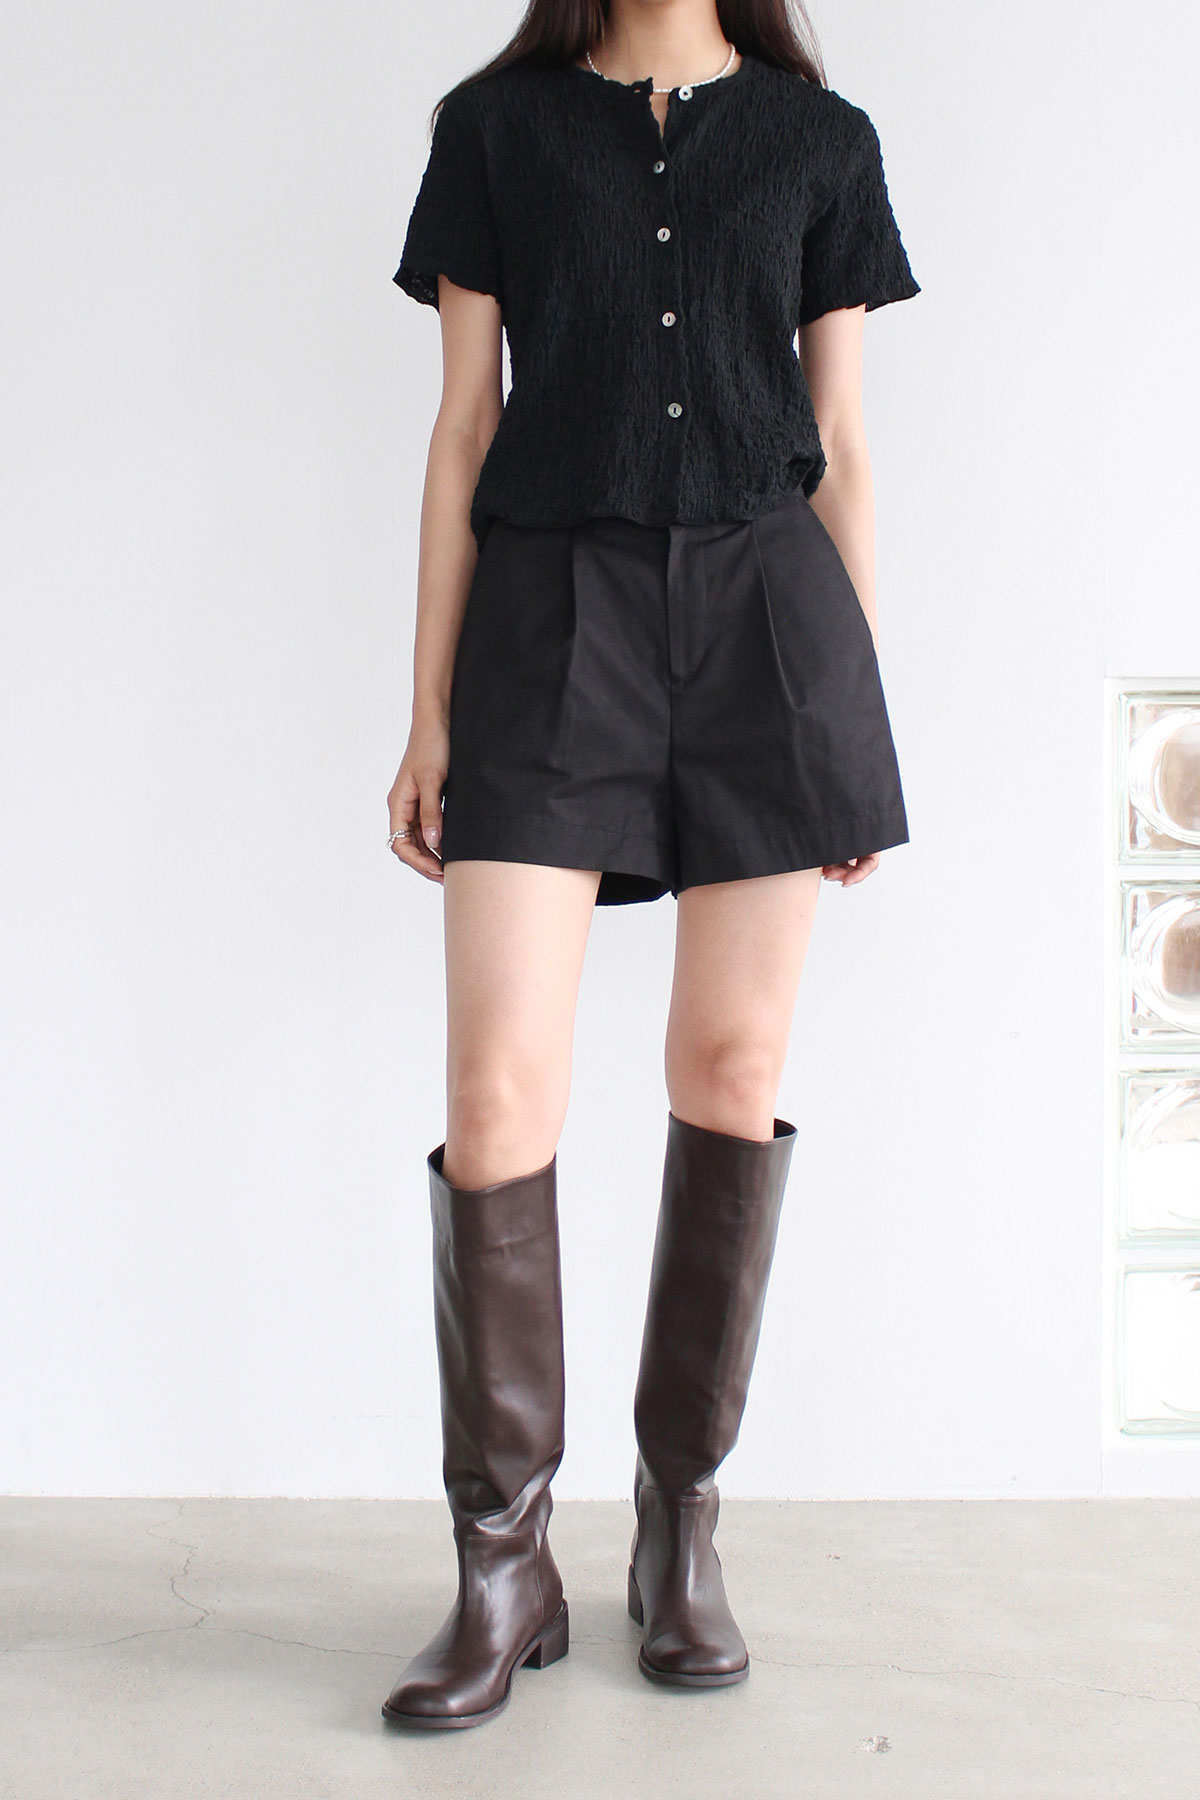 FOUND SHORTS PANTS ( SOLD OUT)